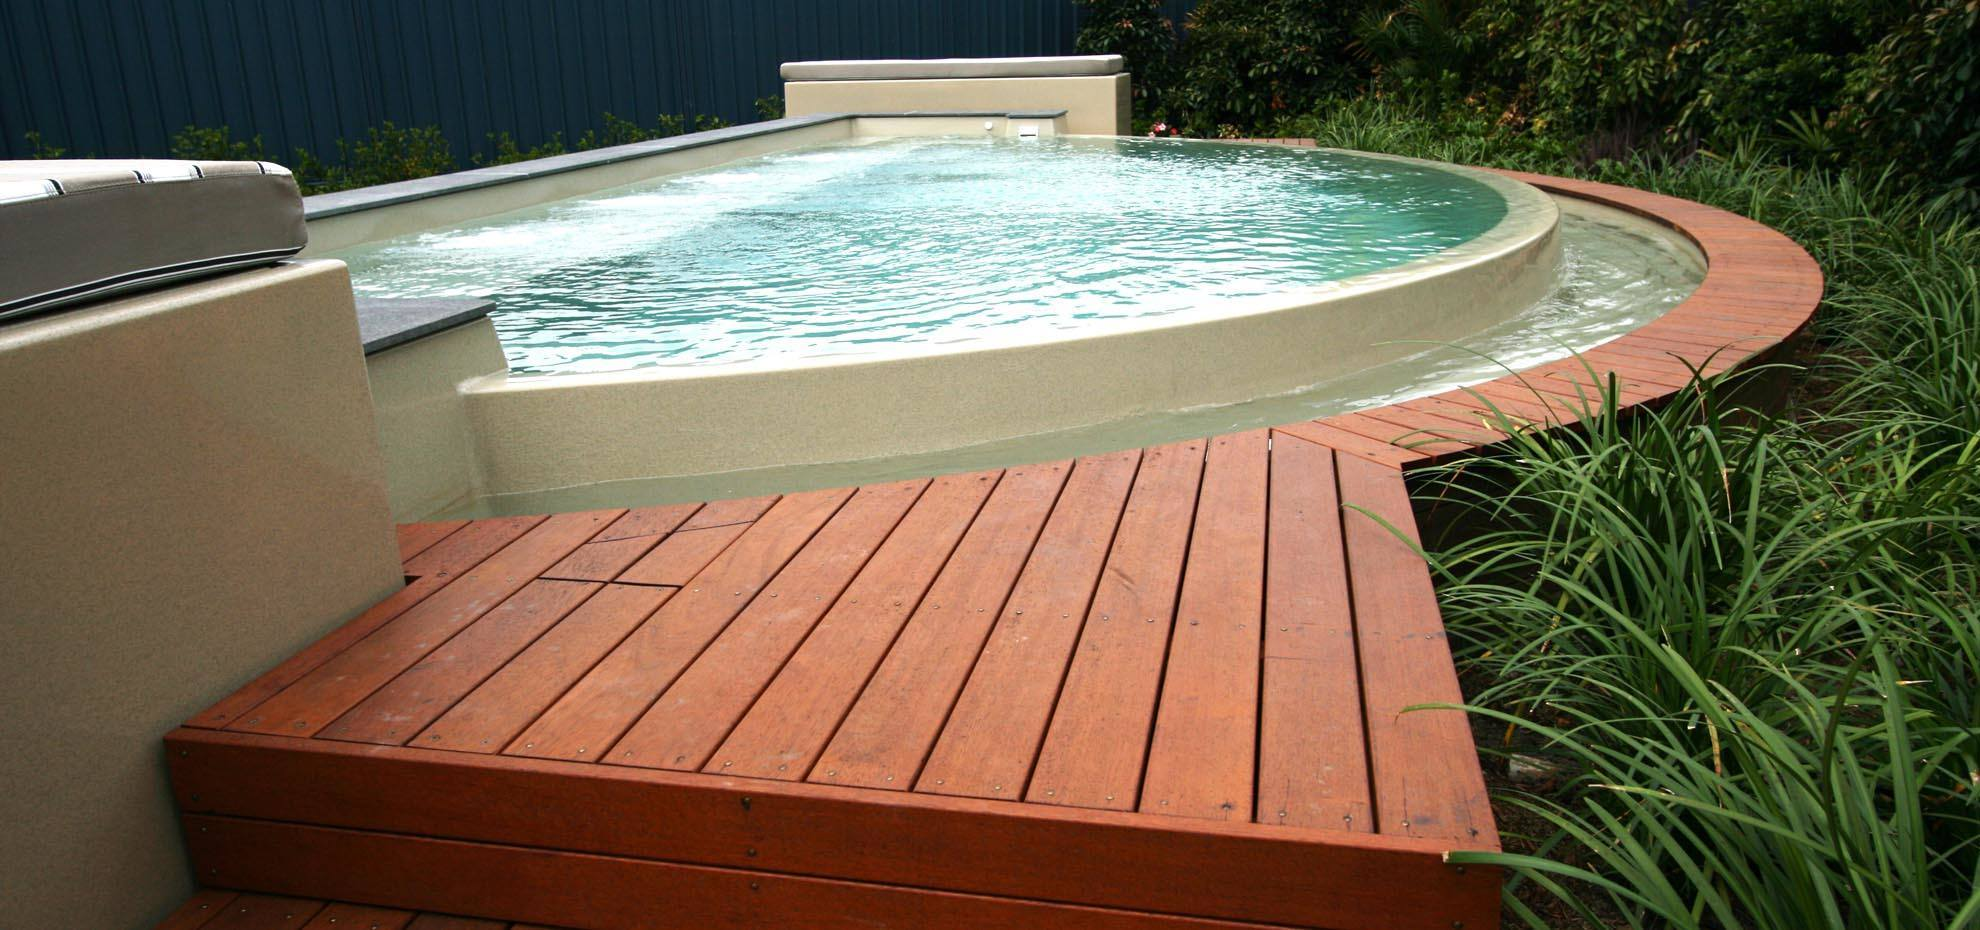 Horizon style fibreglass pool with infinity feature by Leisure Pools